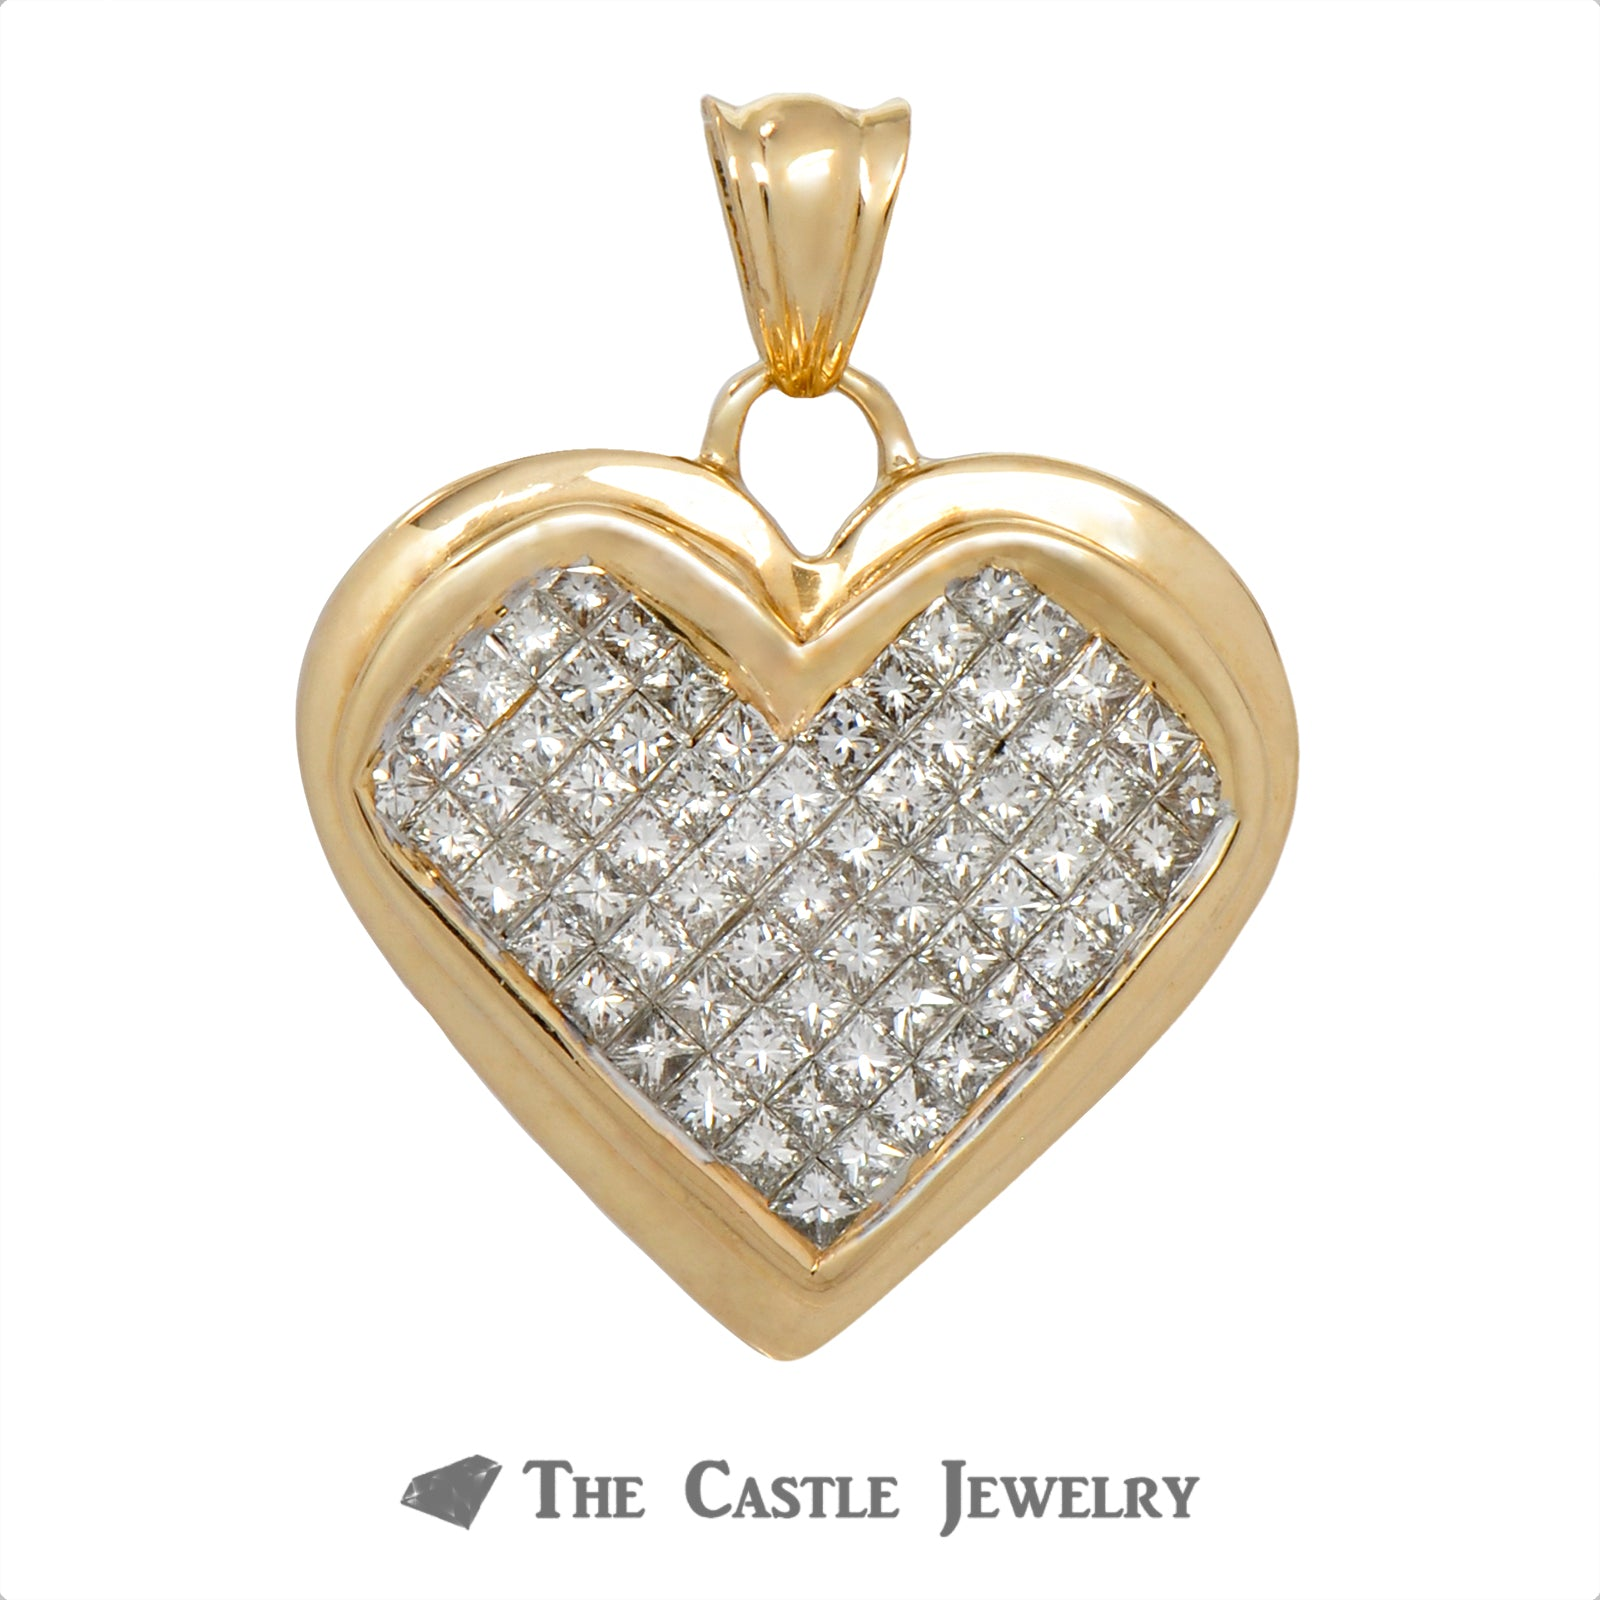 2cttw Heart Shaped Invisible Set Princess Cut Diamond Pendant Crafted in Yellow Gold